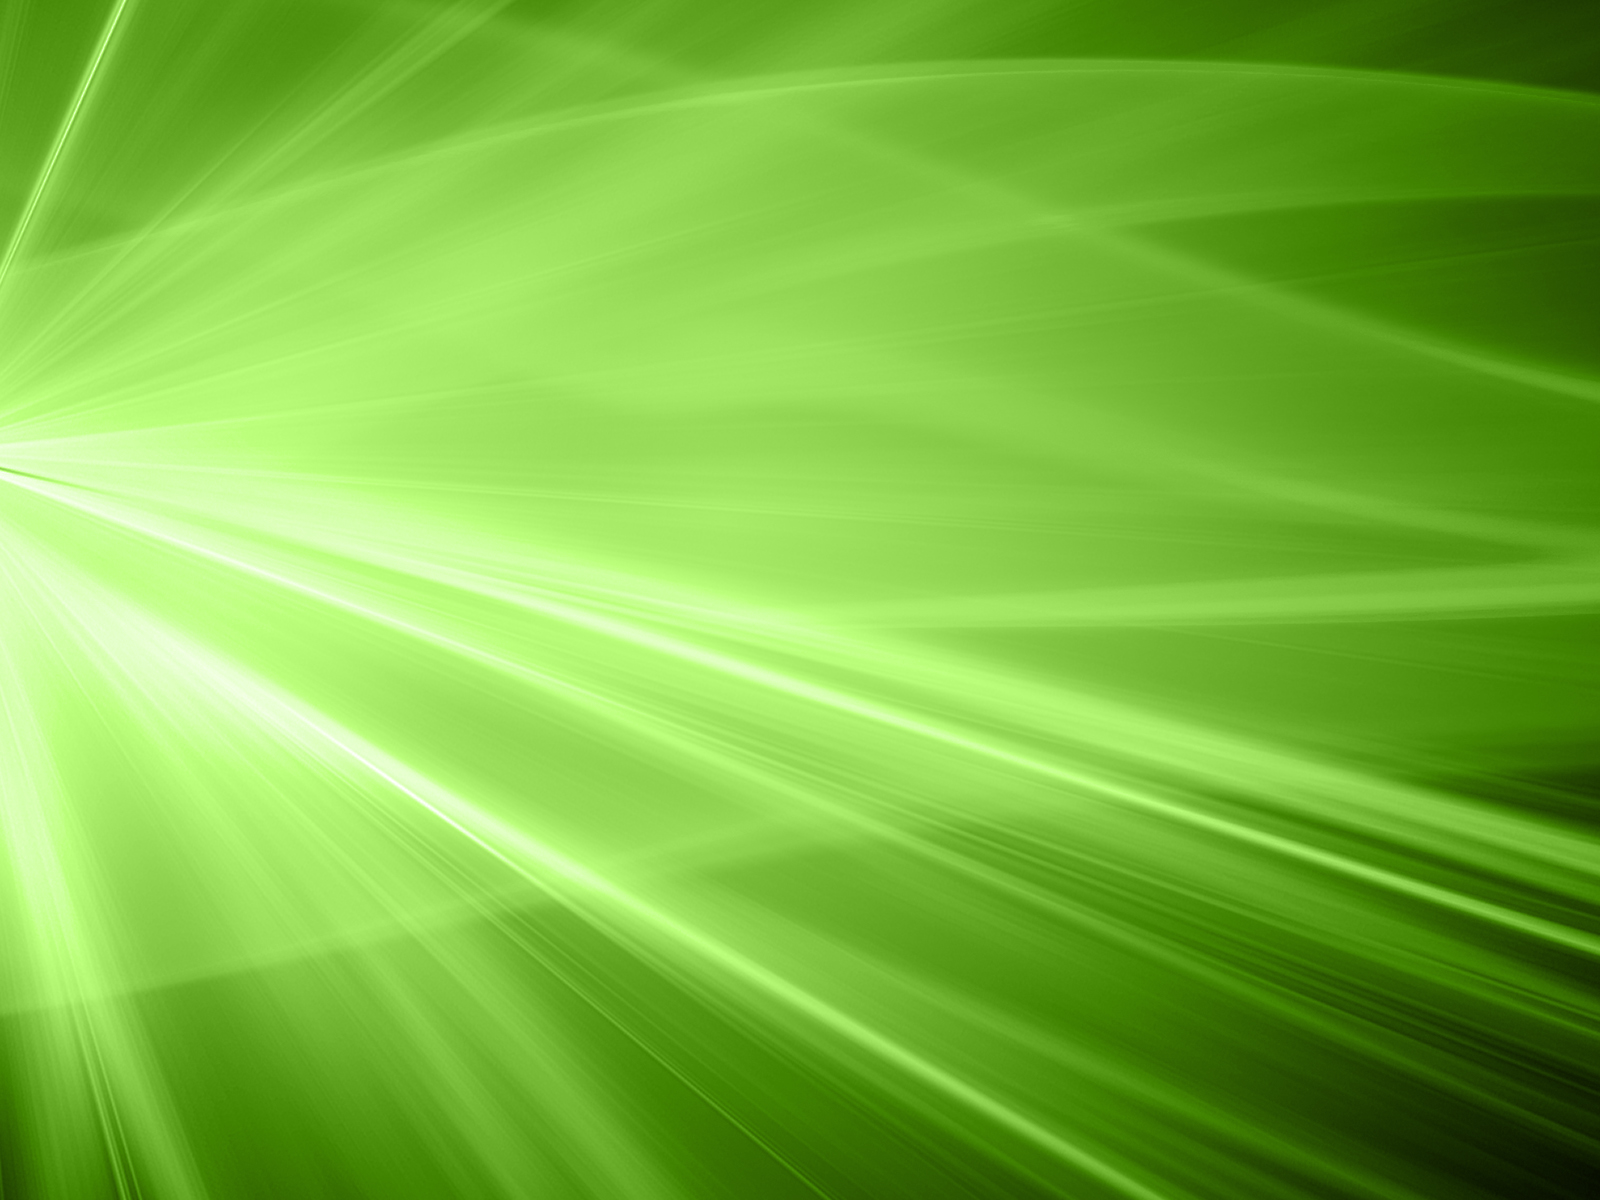 linux mint wallpapers archives hd wallpapers